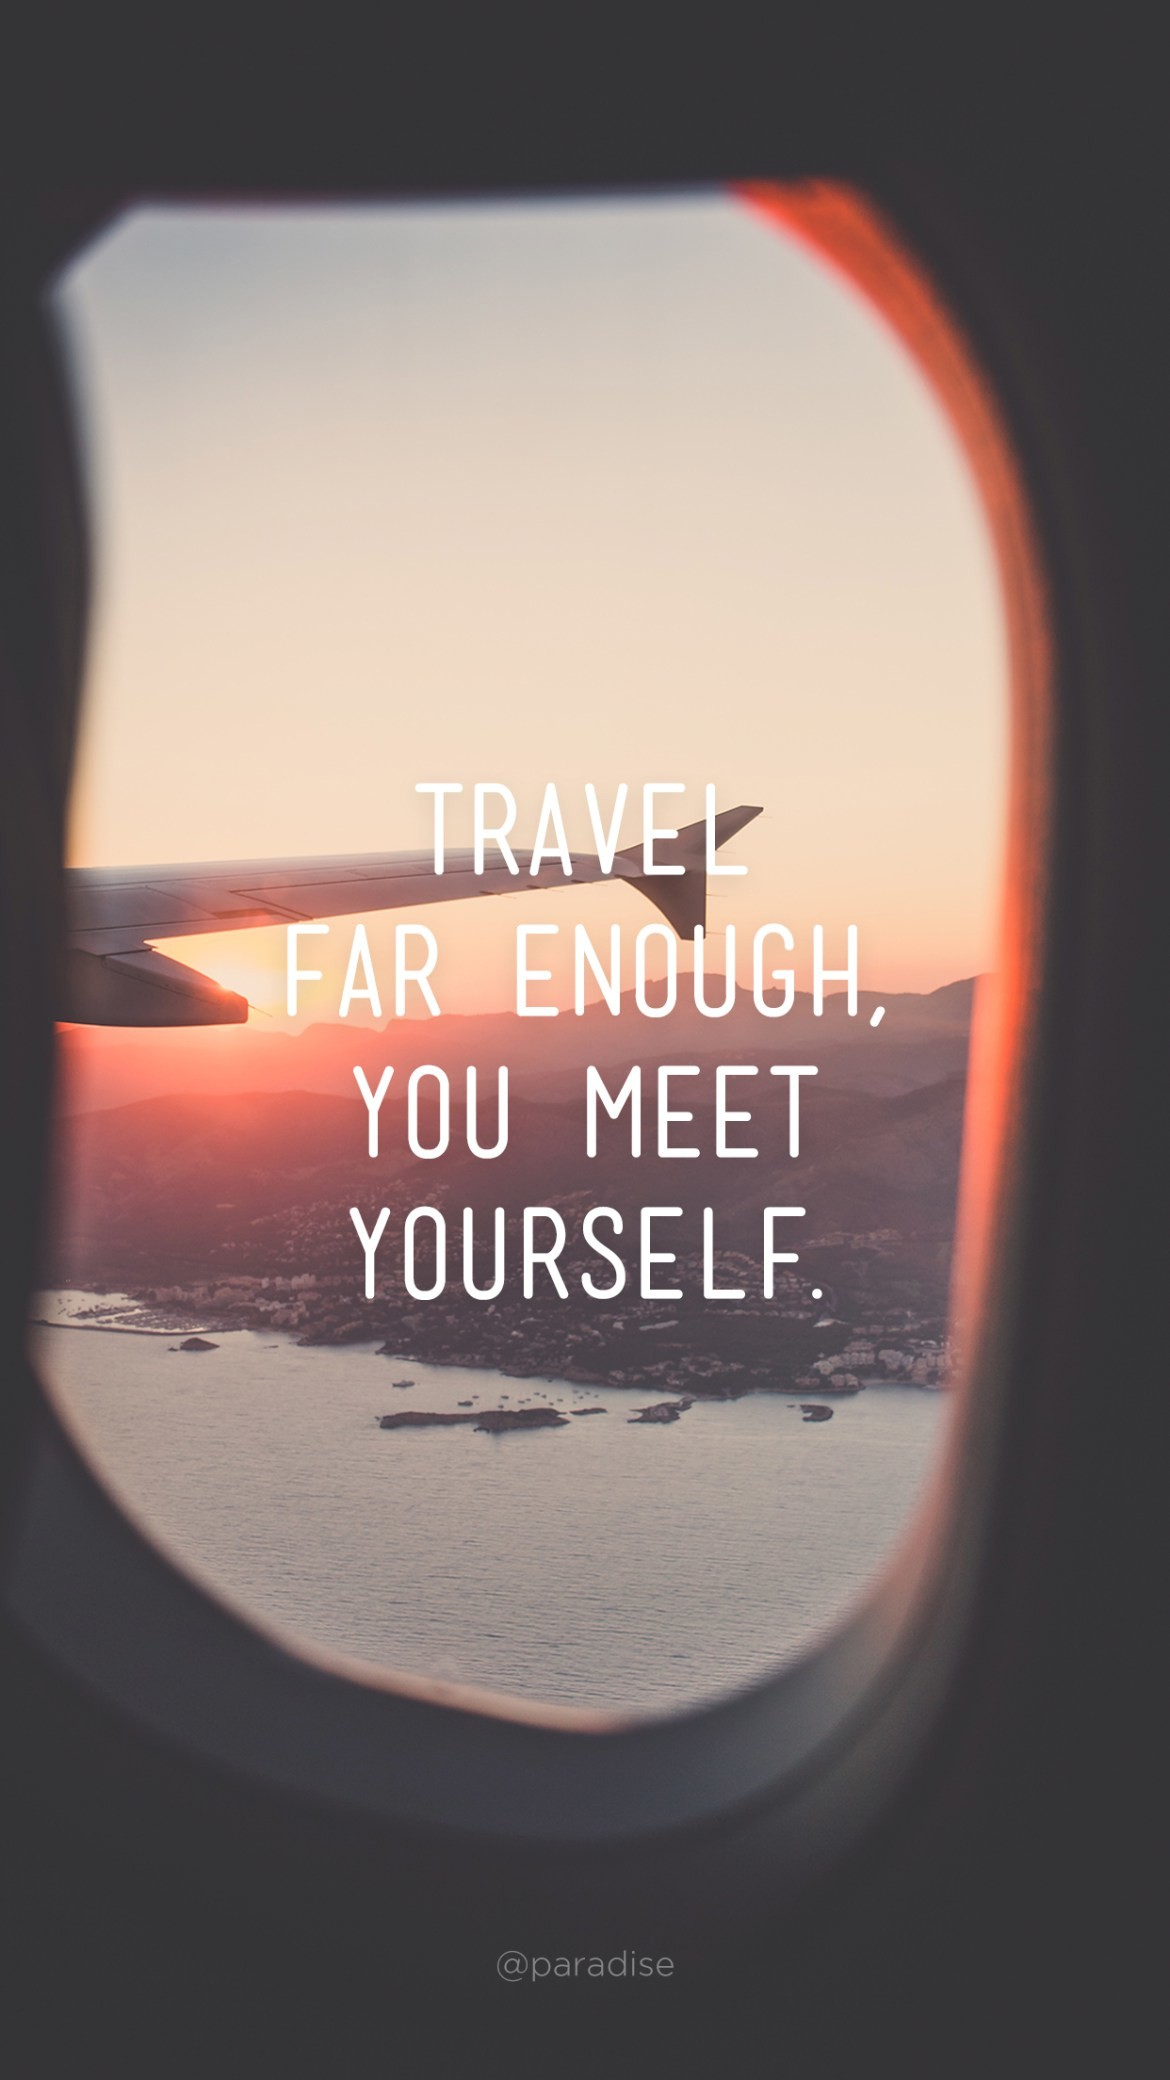 15 Beautiful iPhone Wallpapers with Travel Quotes | Via Paradise